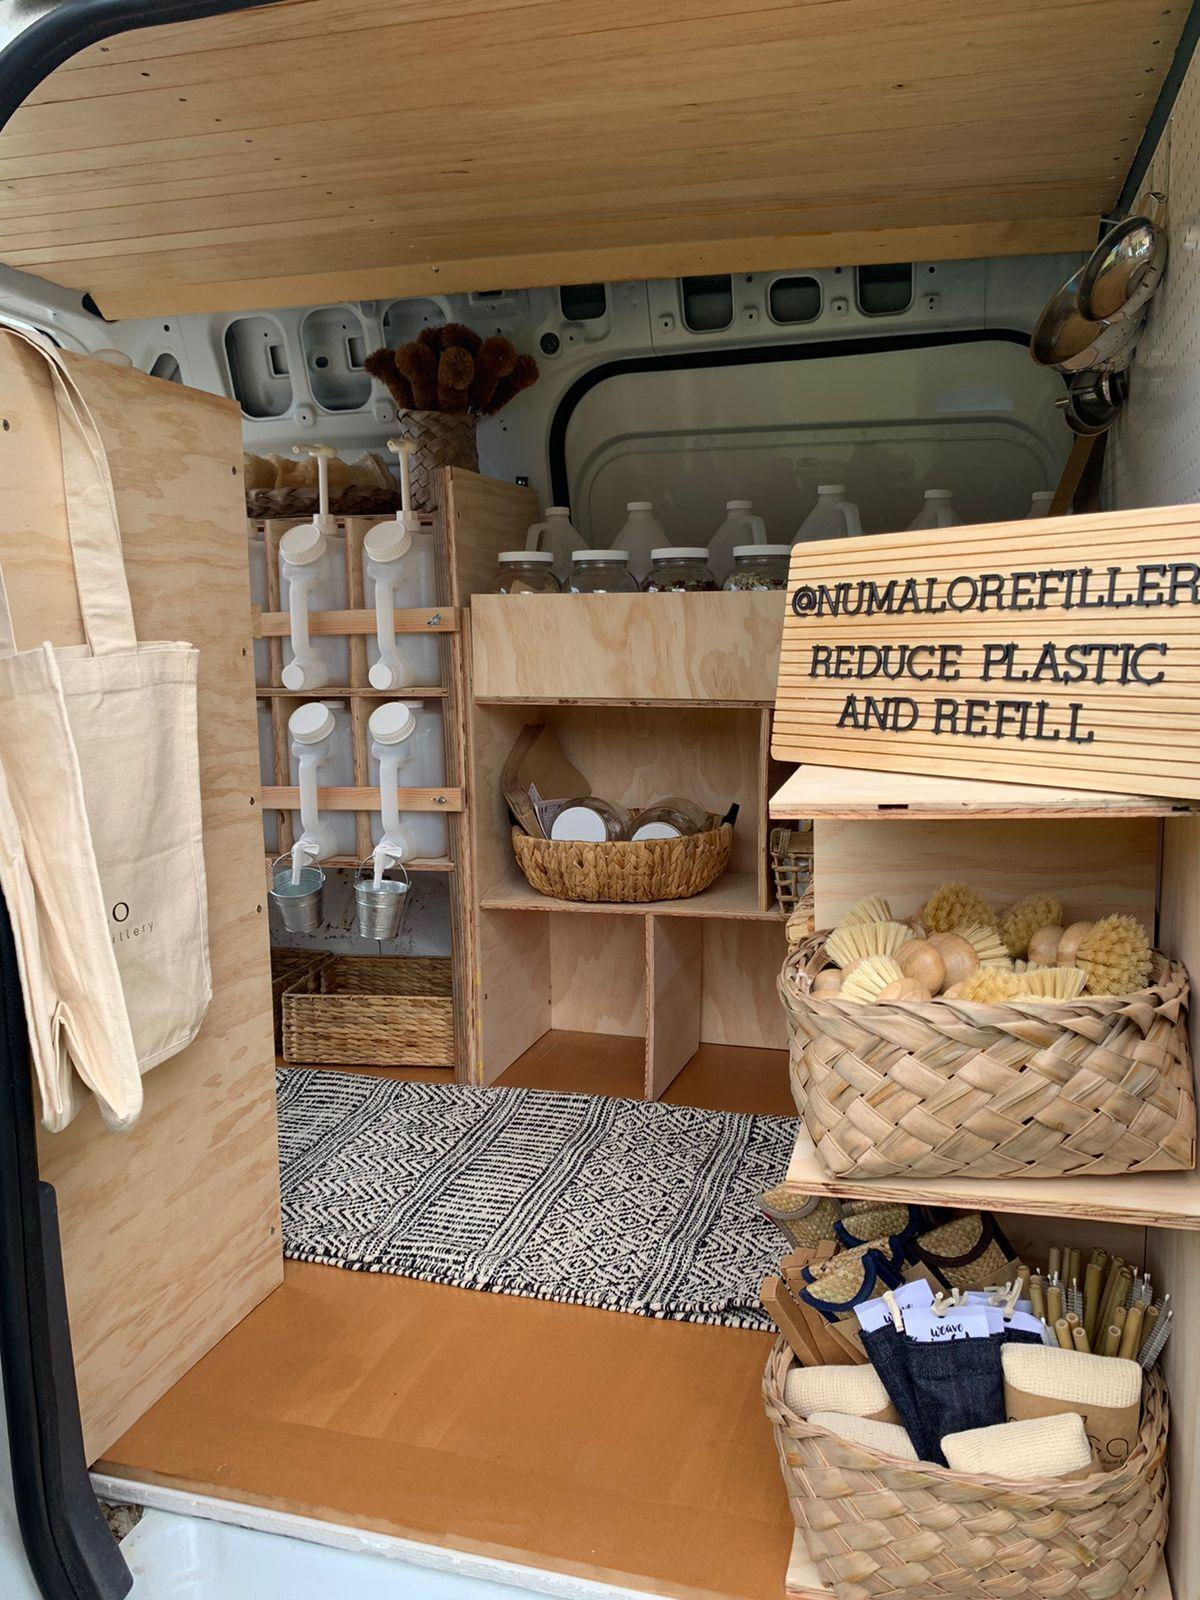 Numa'lo mobile refillery to provide eco-friendly way to buy hygiene products